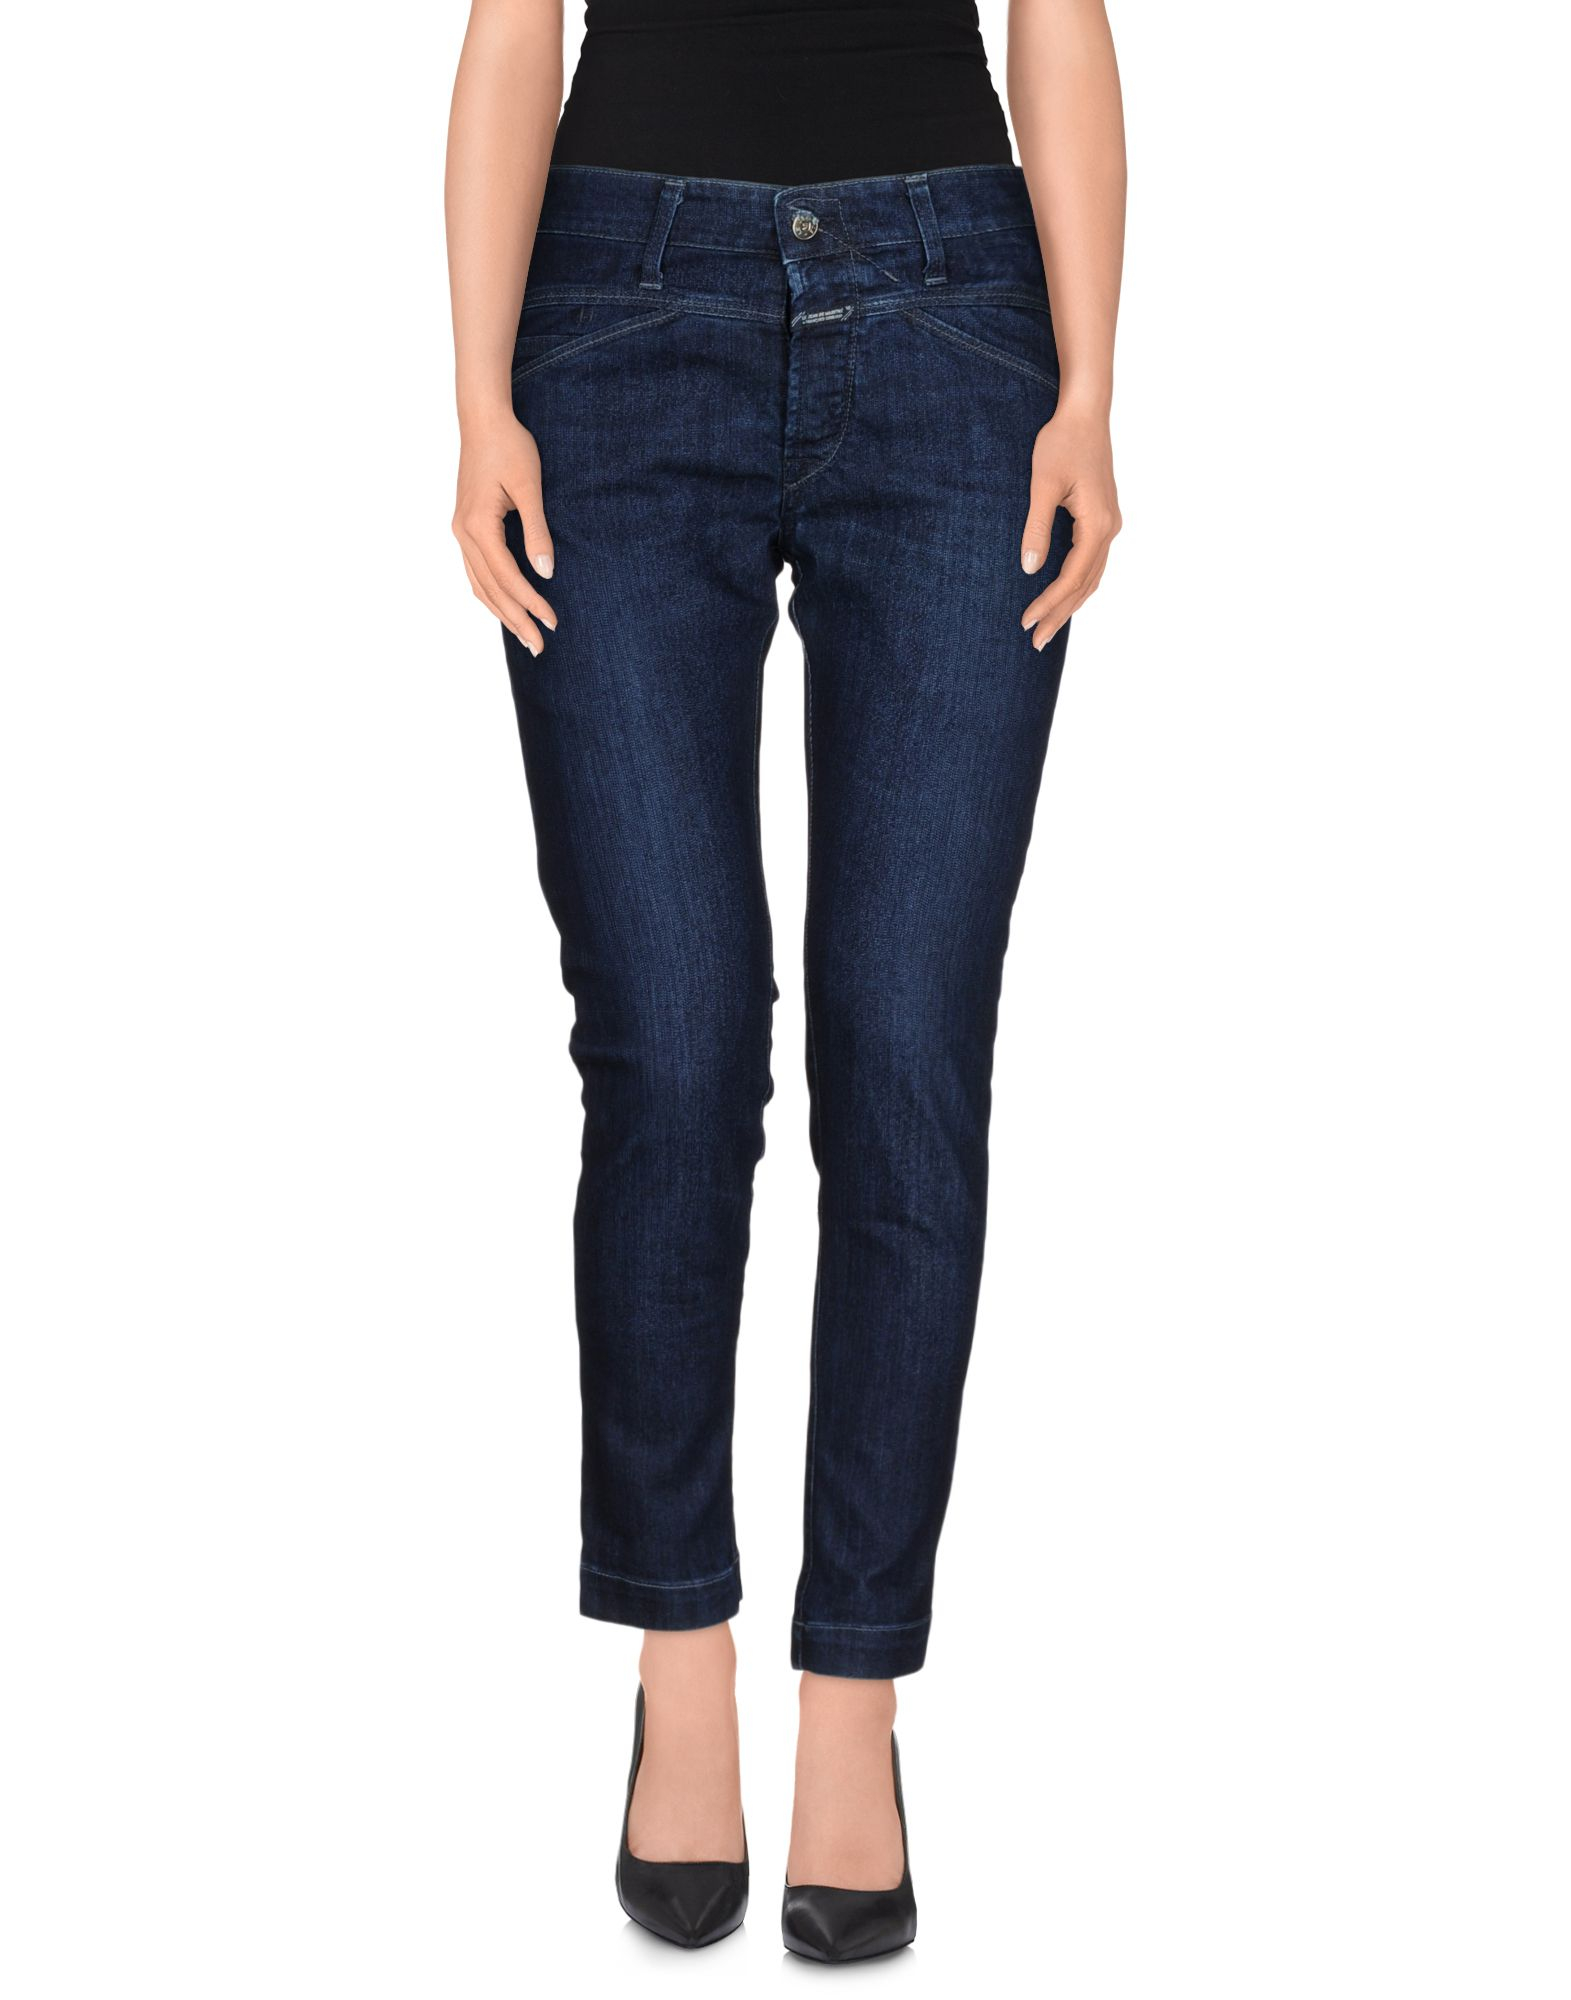 Marithé et françois girbaud Denim Pants in Blue